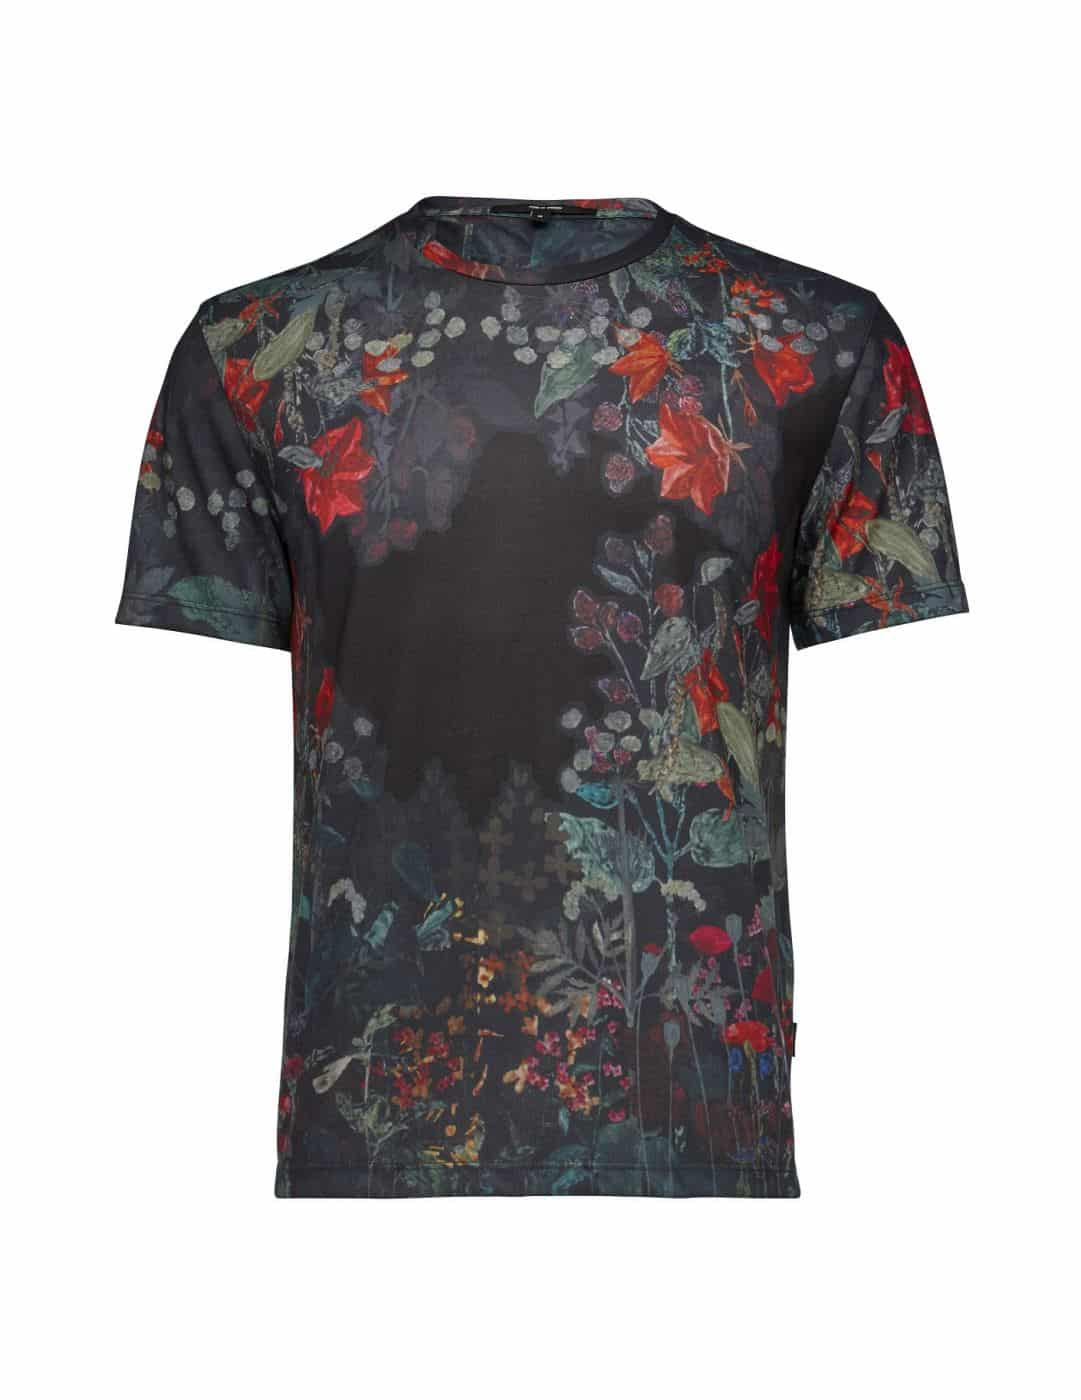 Tiger of sweden kretin black flower print t shirt for Black floral print shirt